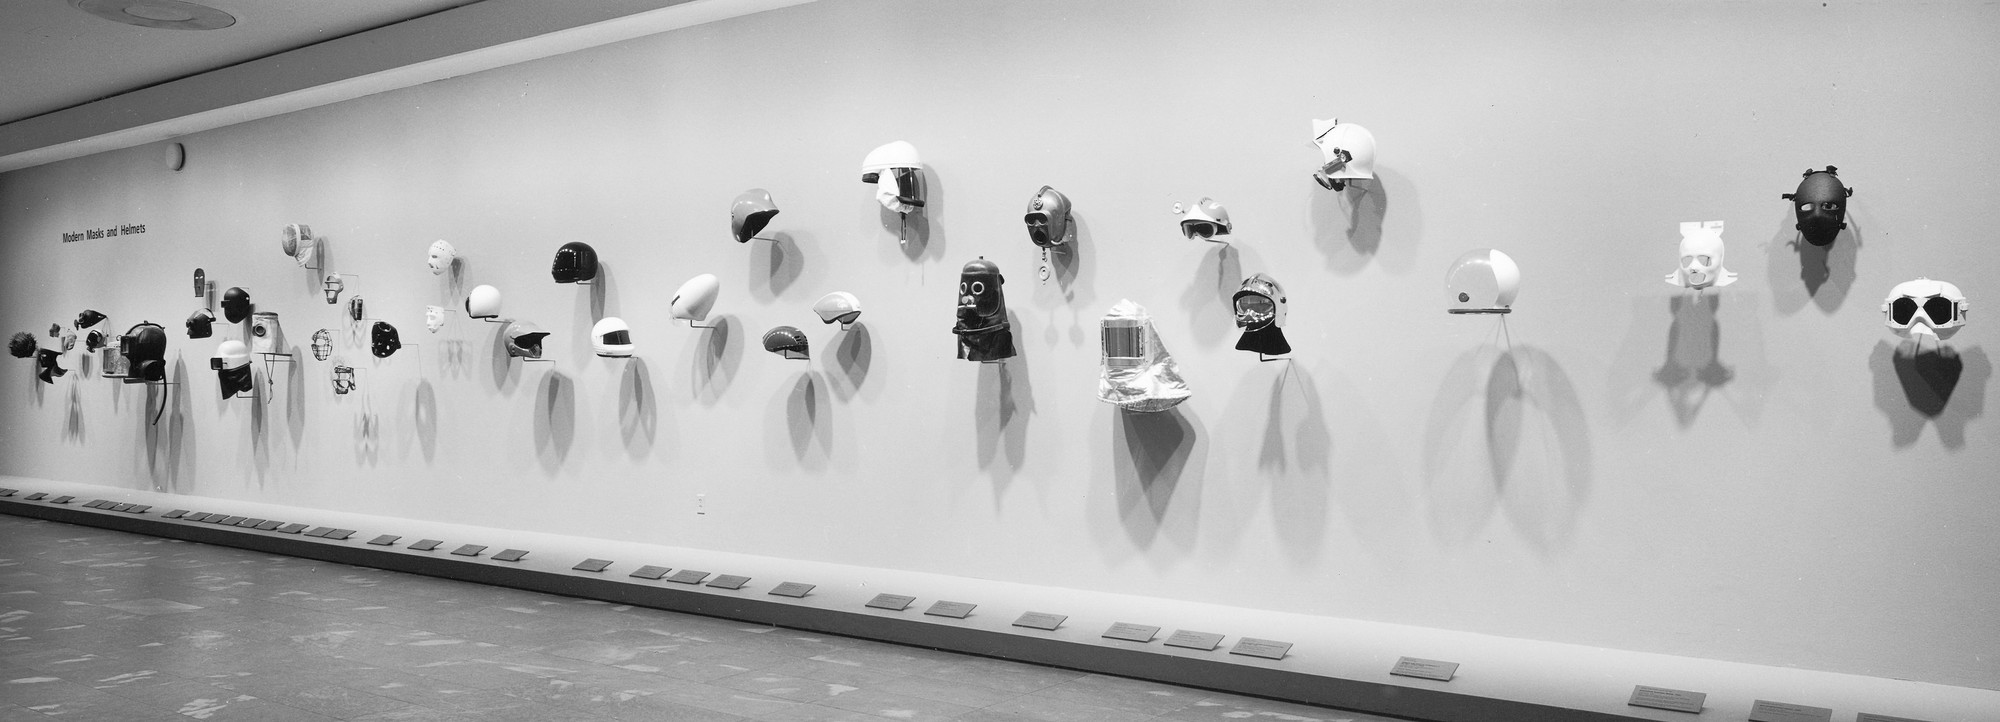 Installation view of Modern Masks and Helmets at The Museum of Modern Art, New York. Photo: Katherine Keller